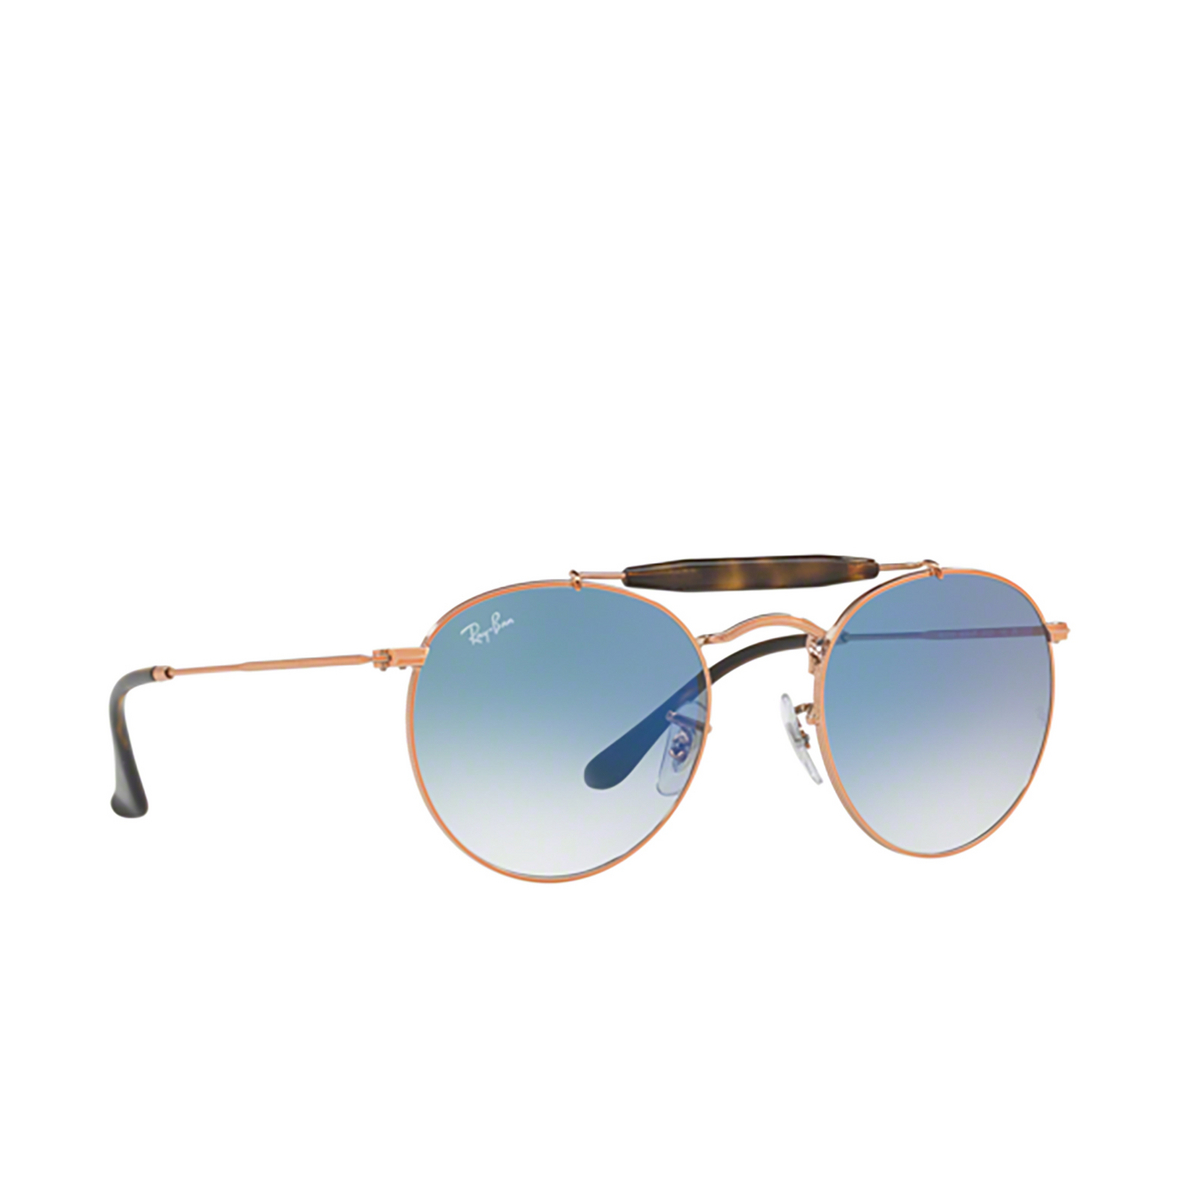 Ray-Ban® Round Sunglasses: RB3747 color 9035/3F - 2/3.